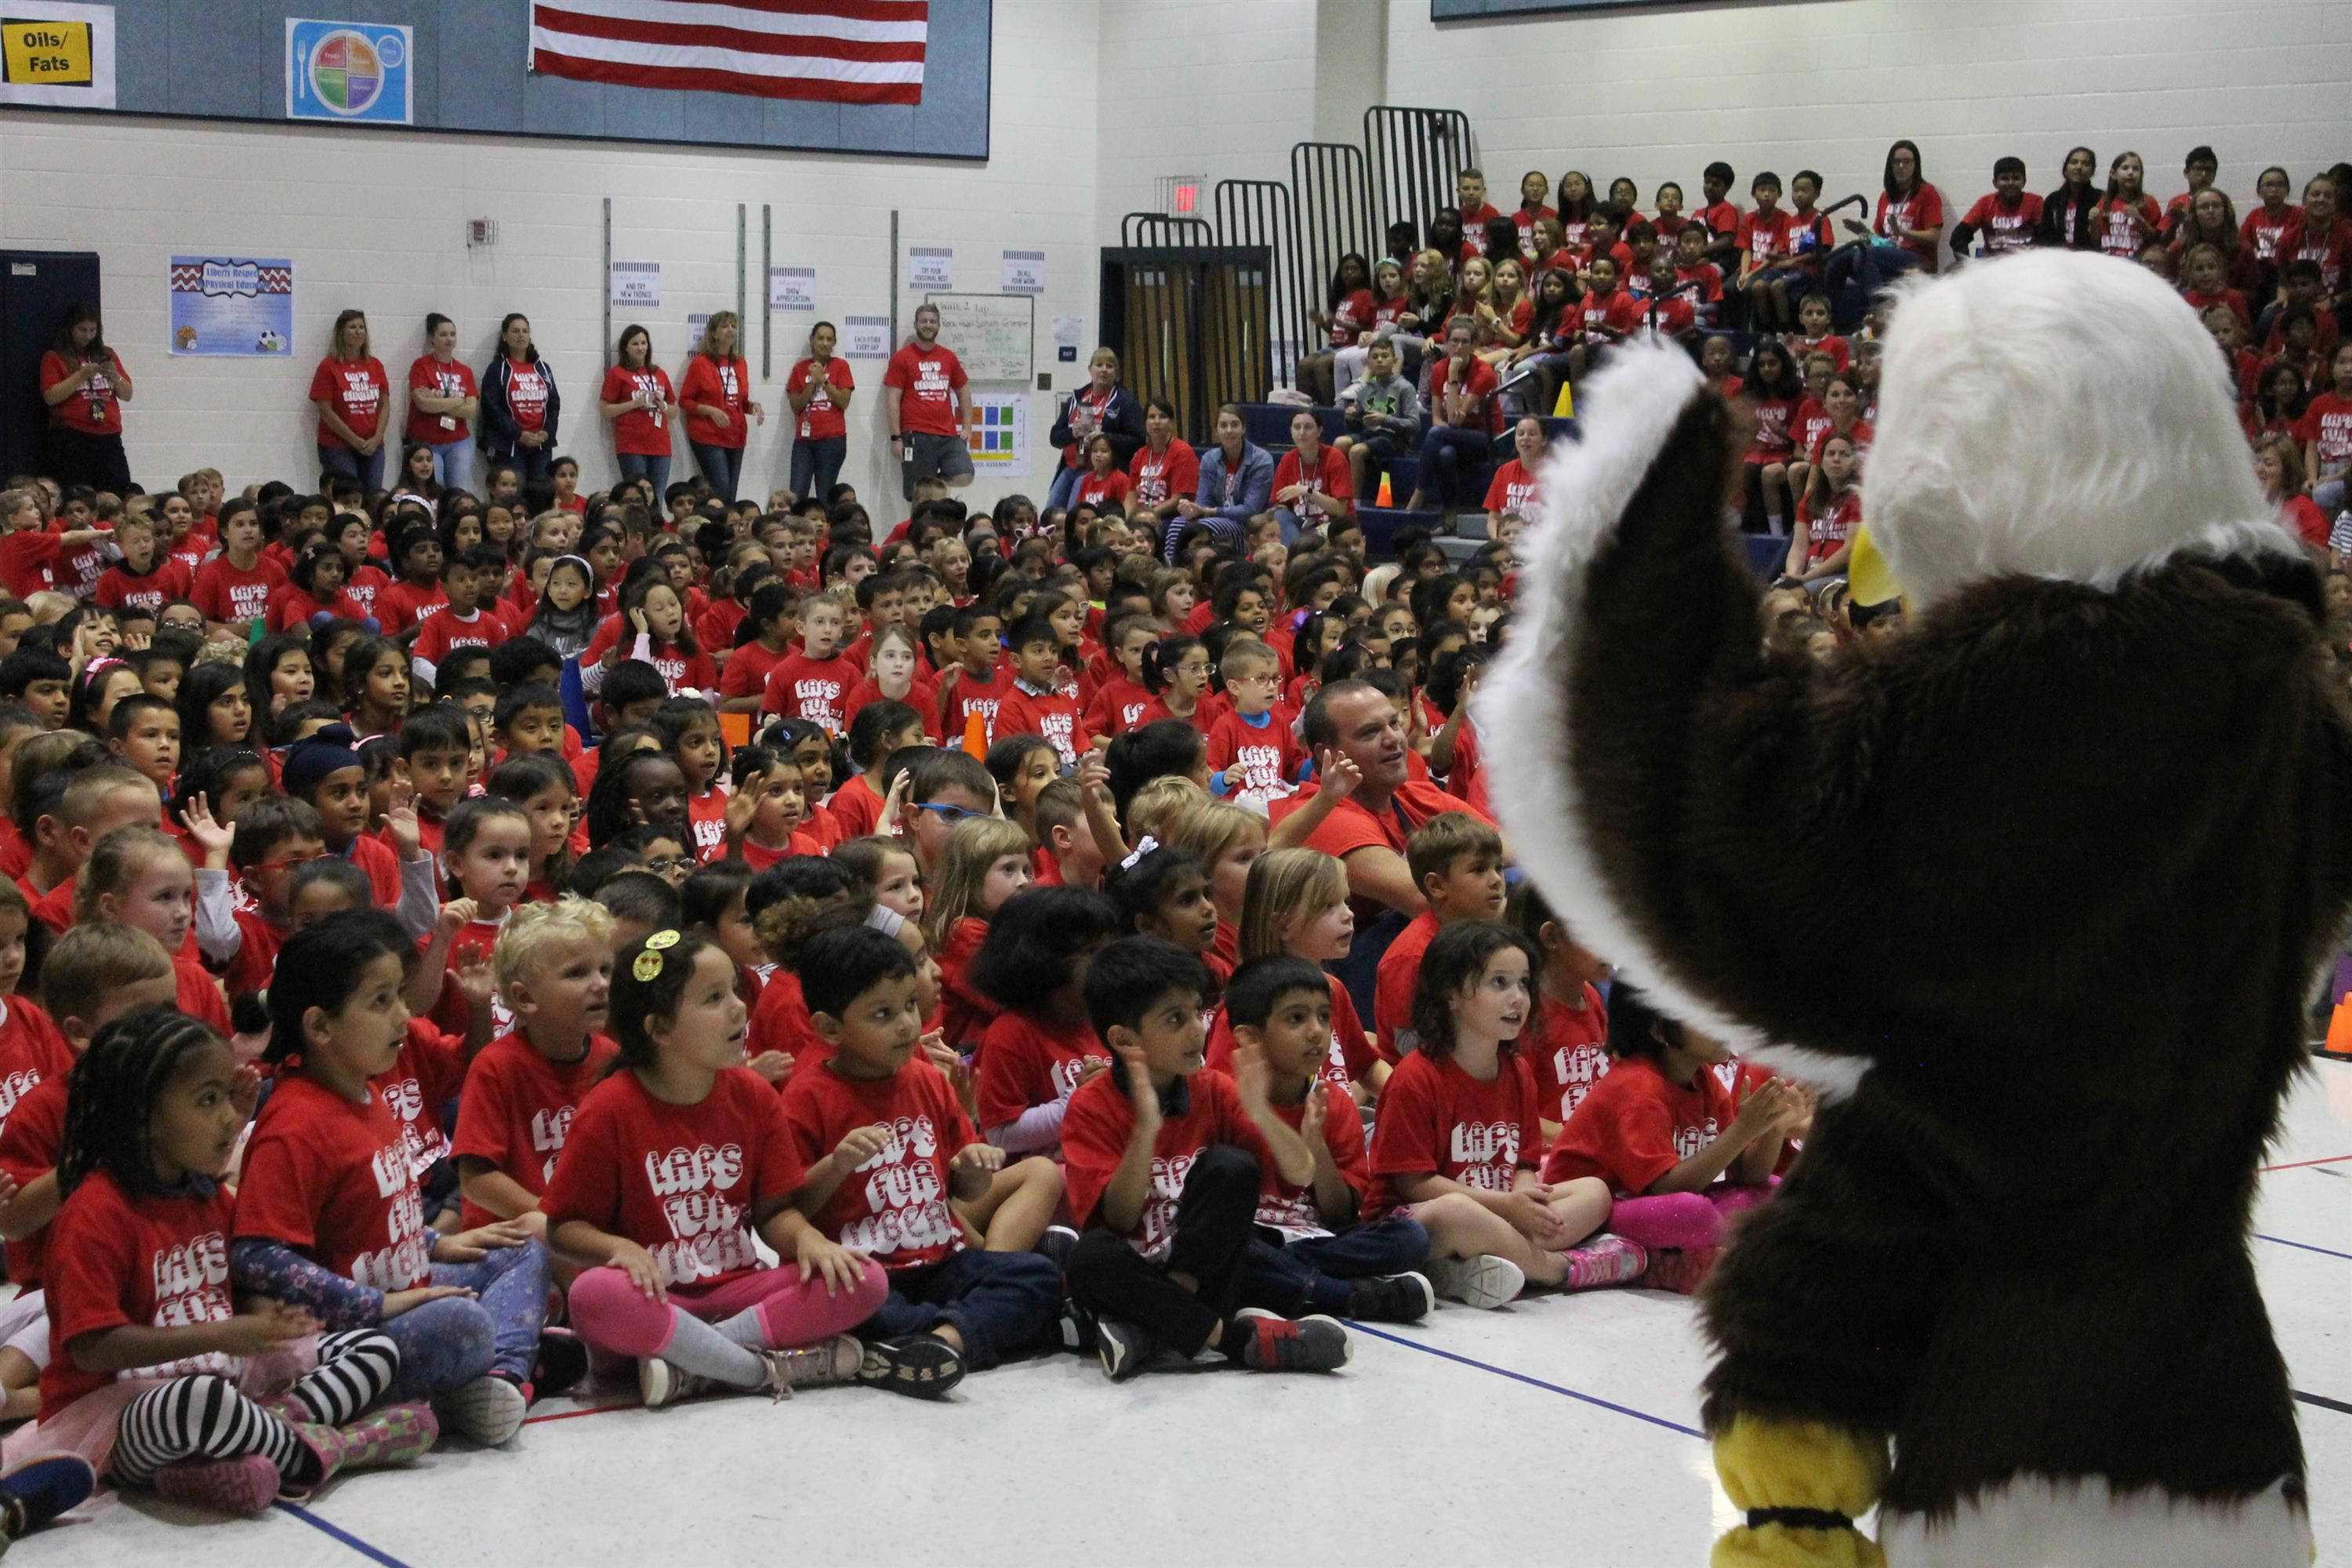 Laps for Liberty Kickoff Assembly was a success!